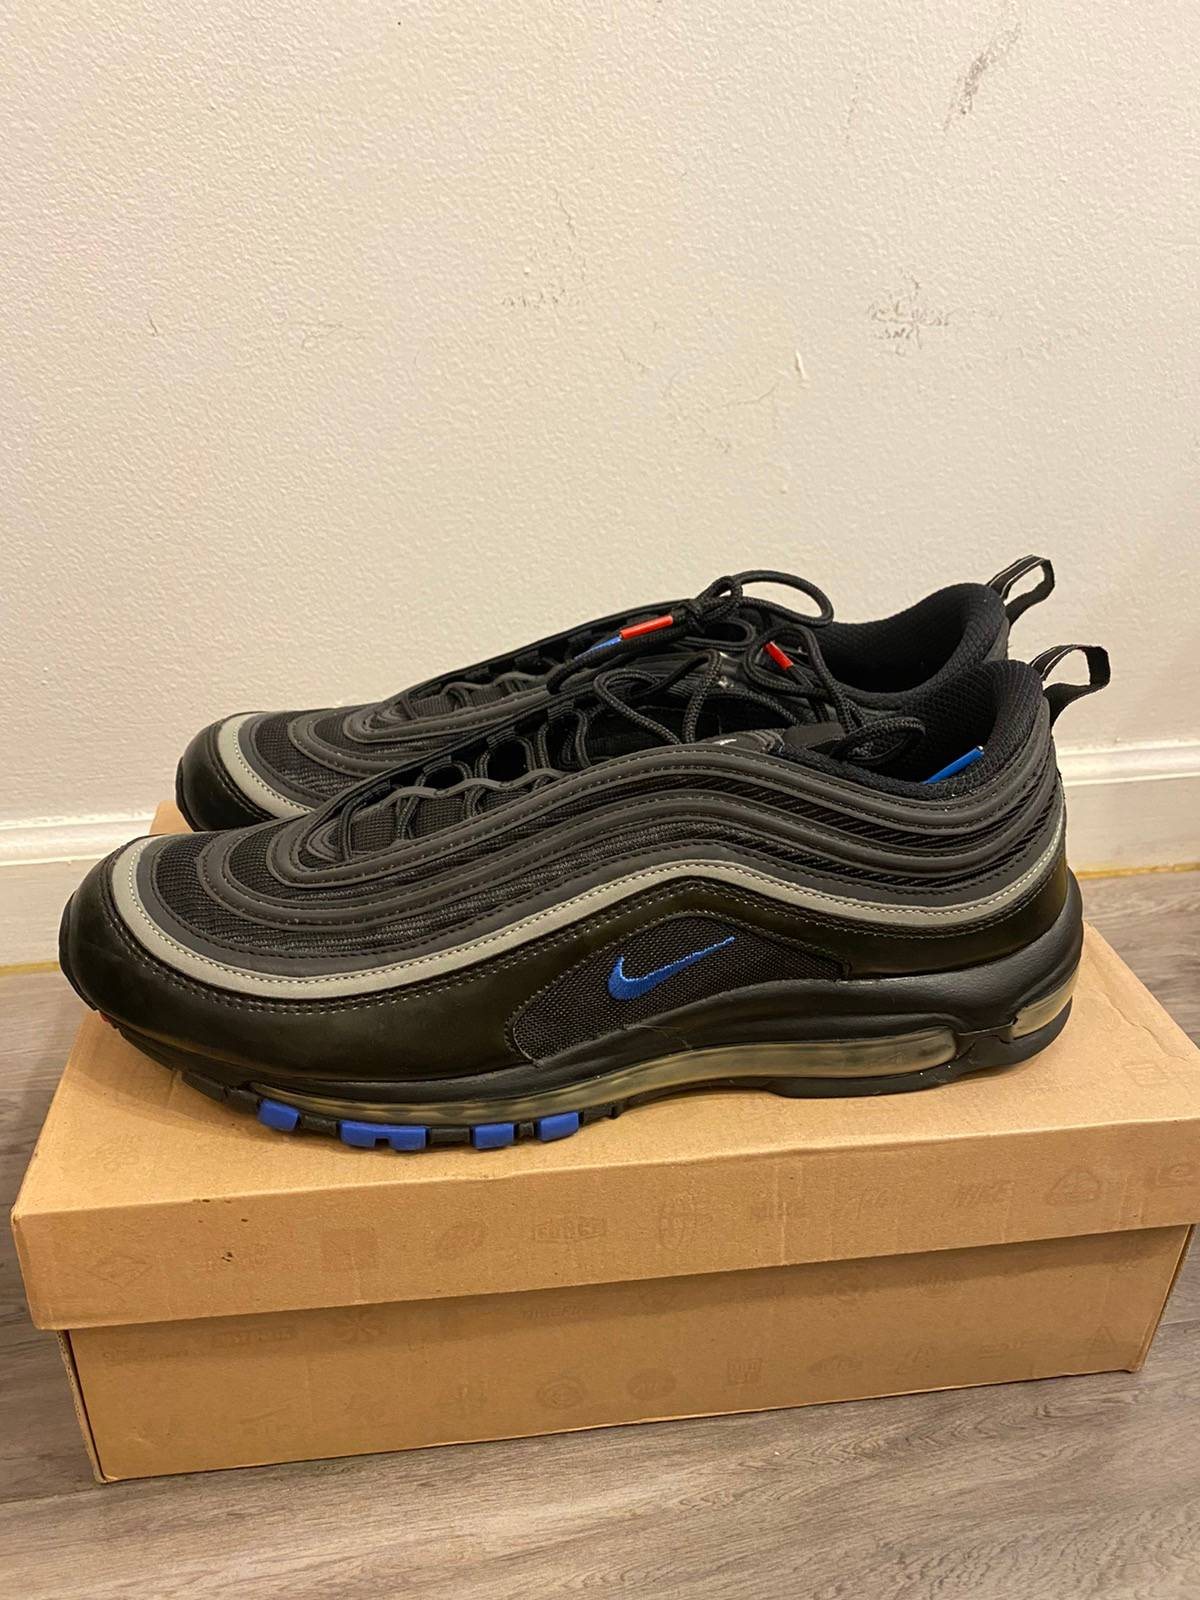 Nike 2009 Nike Air Max 97 Black Met Silver Red Blue Grailed